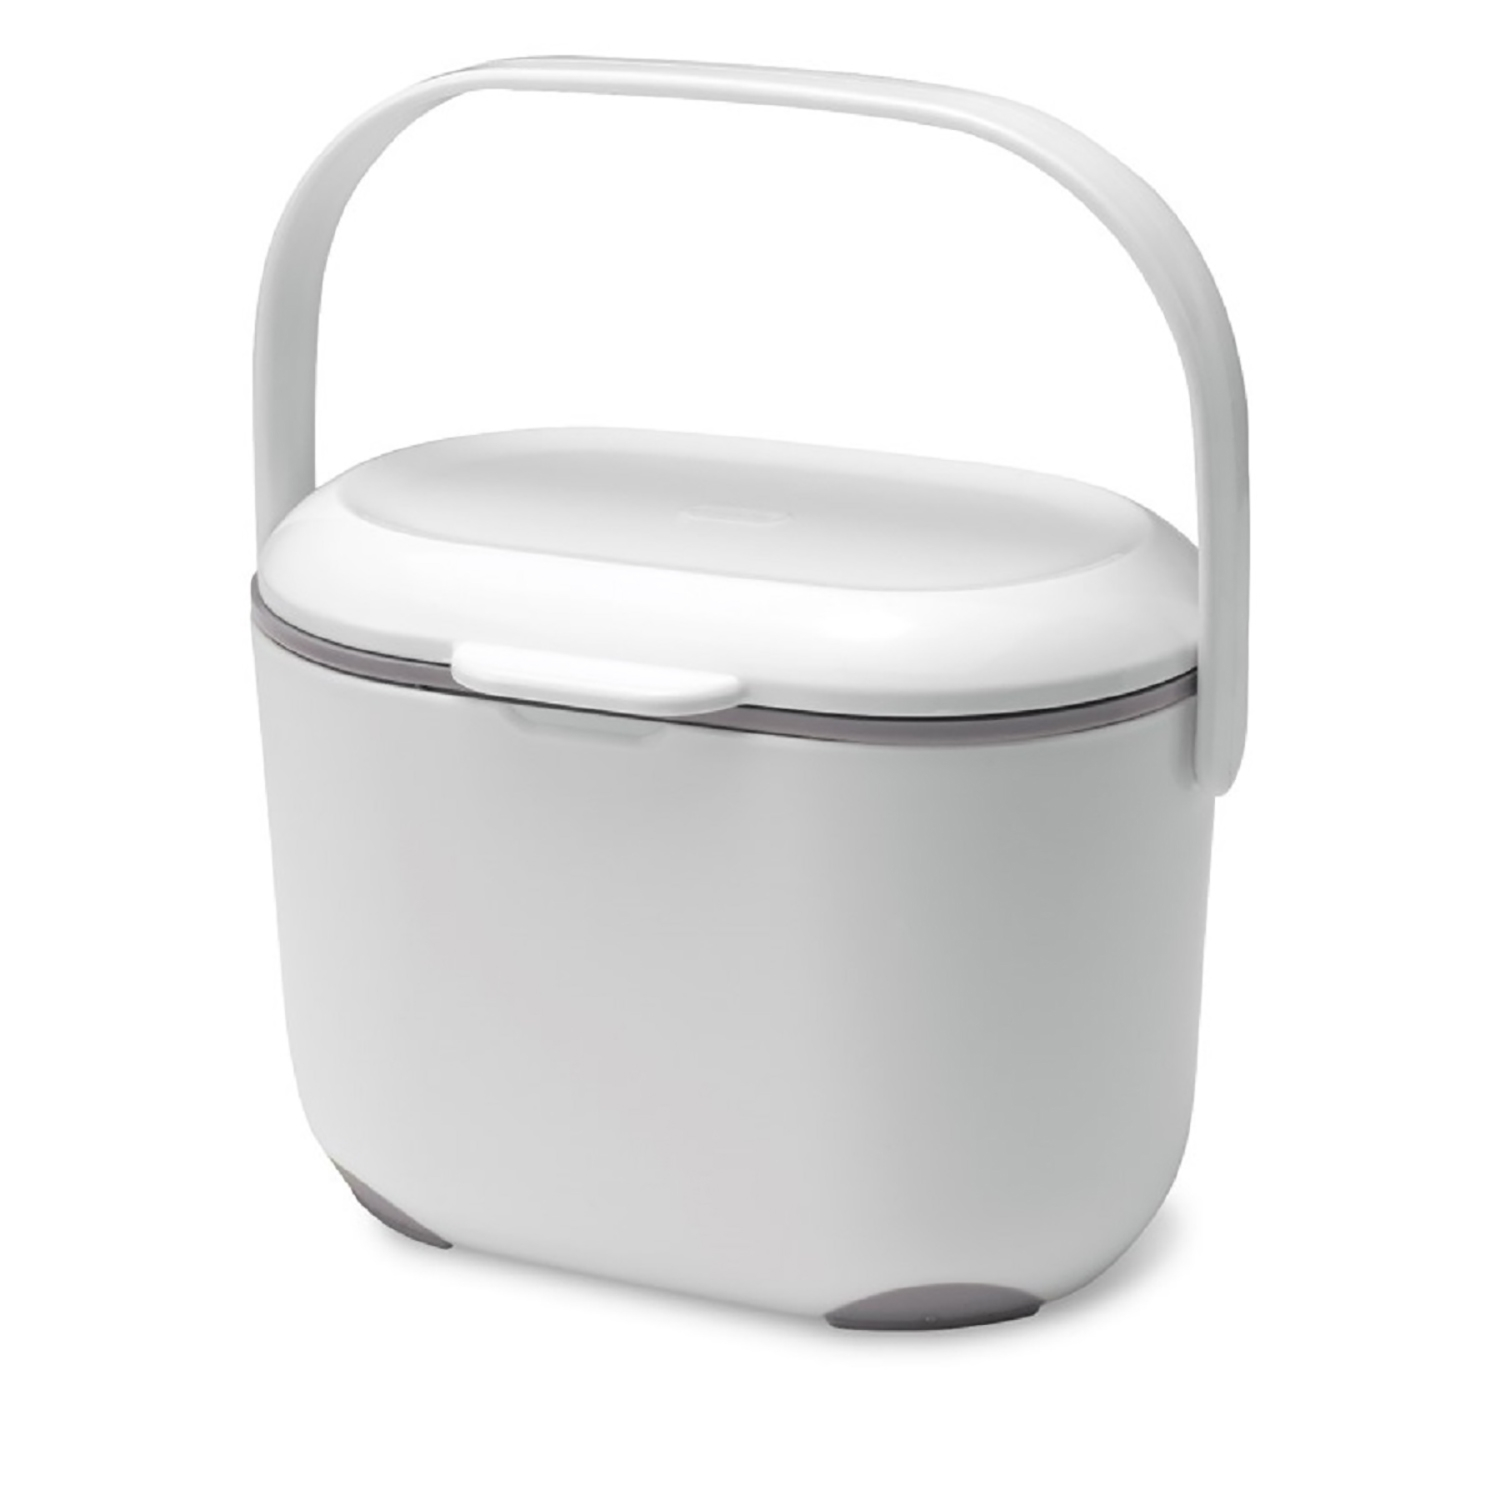 Image of Addis, Compost Caddy, White, 2.5 litre